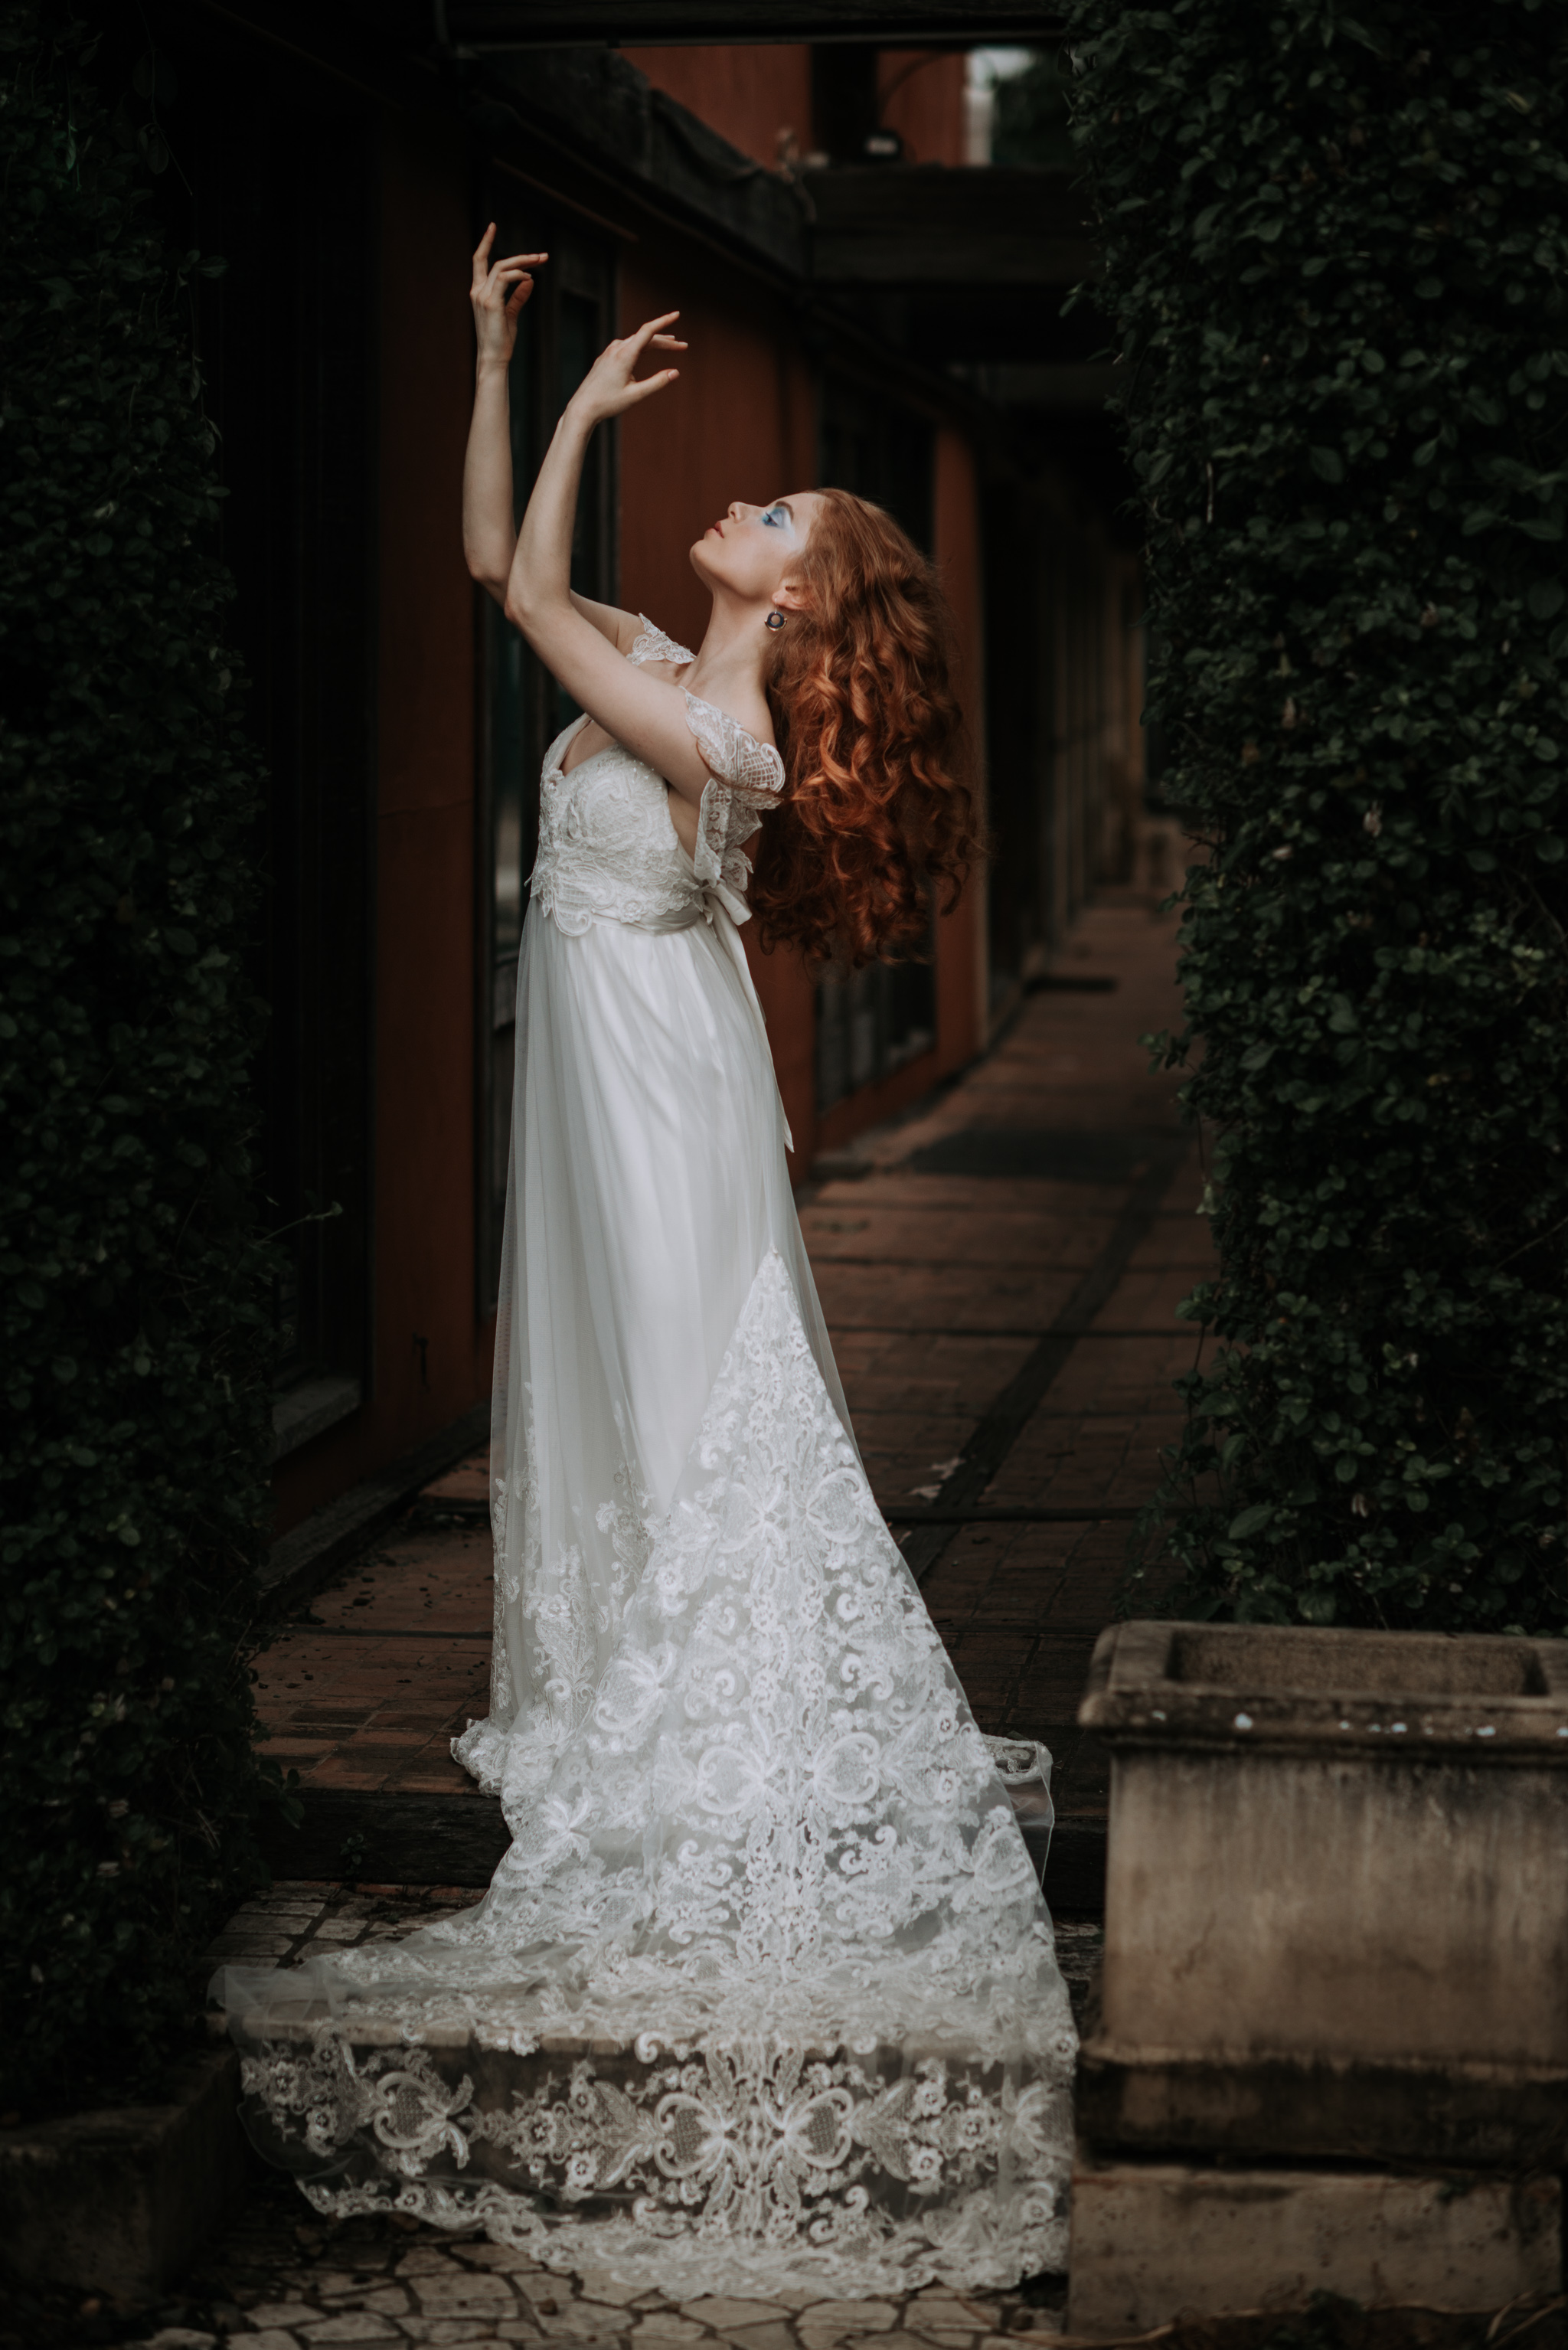 LOVELENSCAPES PHOTOGRAPHY X ANNA CAMPBELL BRIDAL X LEMAE MAKEUP ARTISTRY X BLOOMING LOVELY BOUQUETS X ERIN LIGHTFOOT X LITTLE WHITE COUTURE • 8.jpg